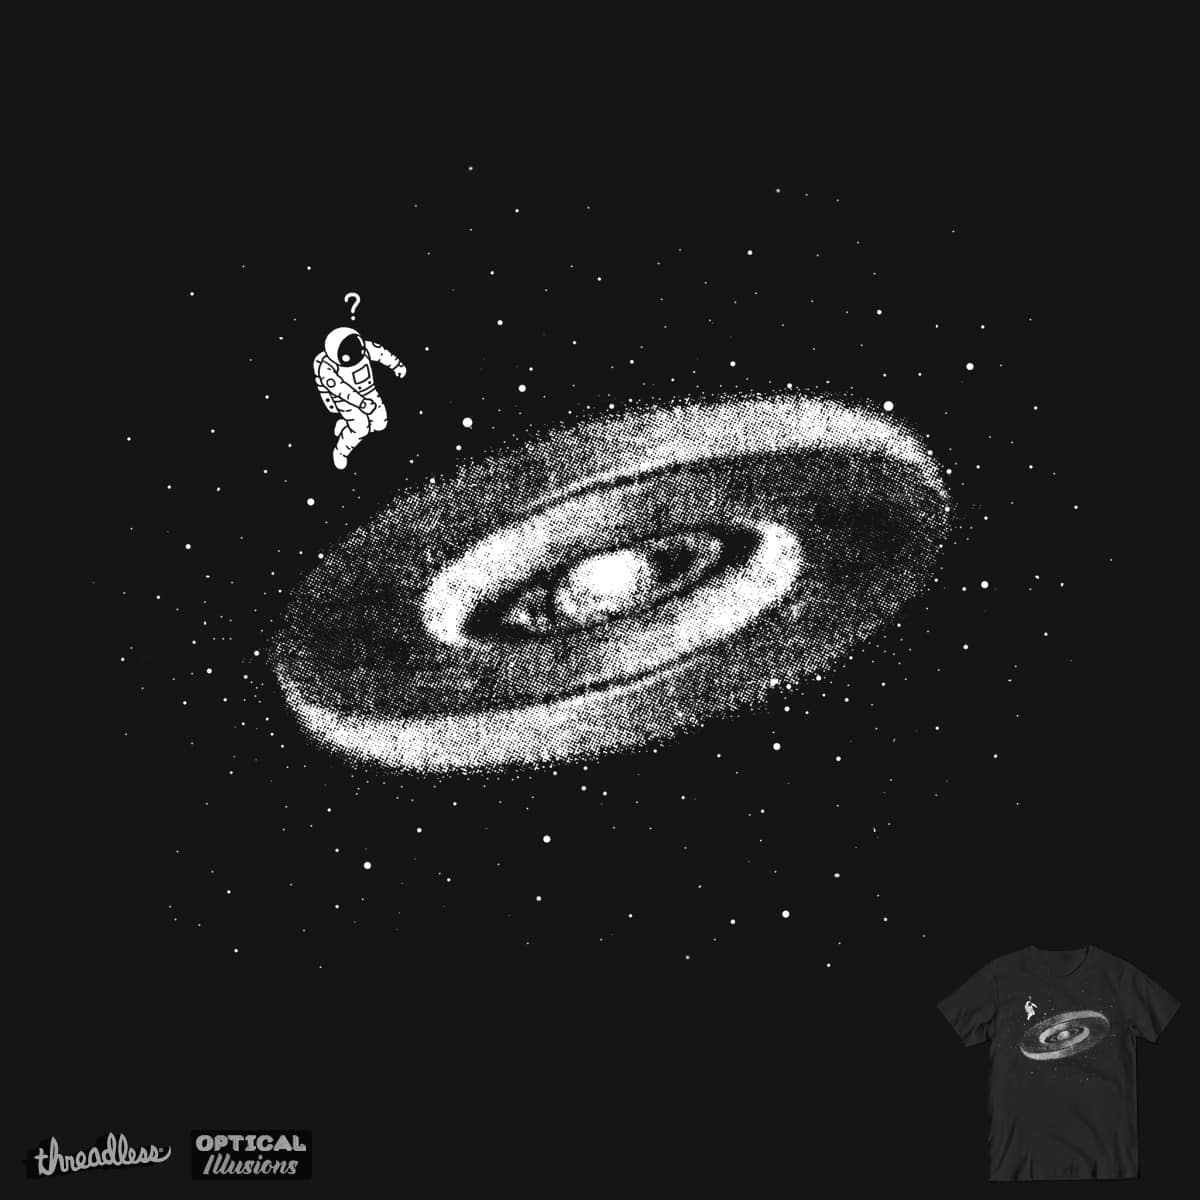 Lost in space by uptme on Threadless